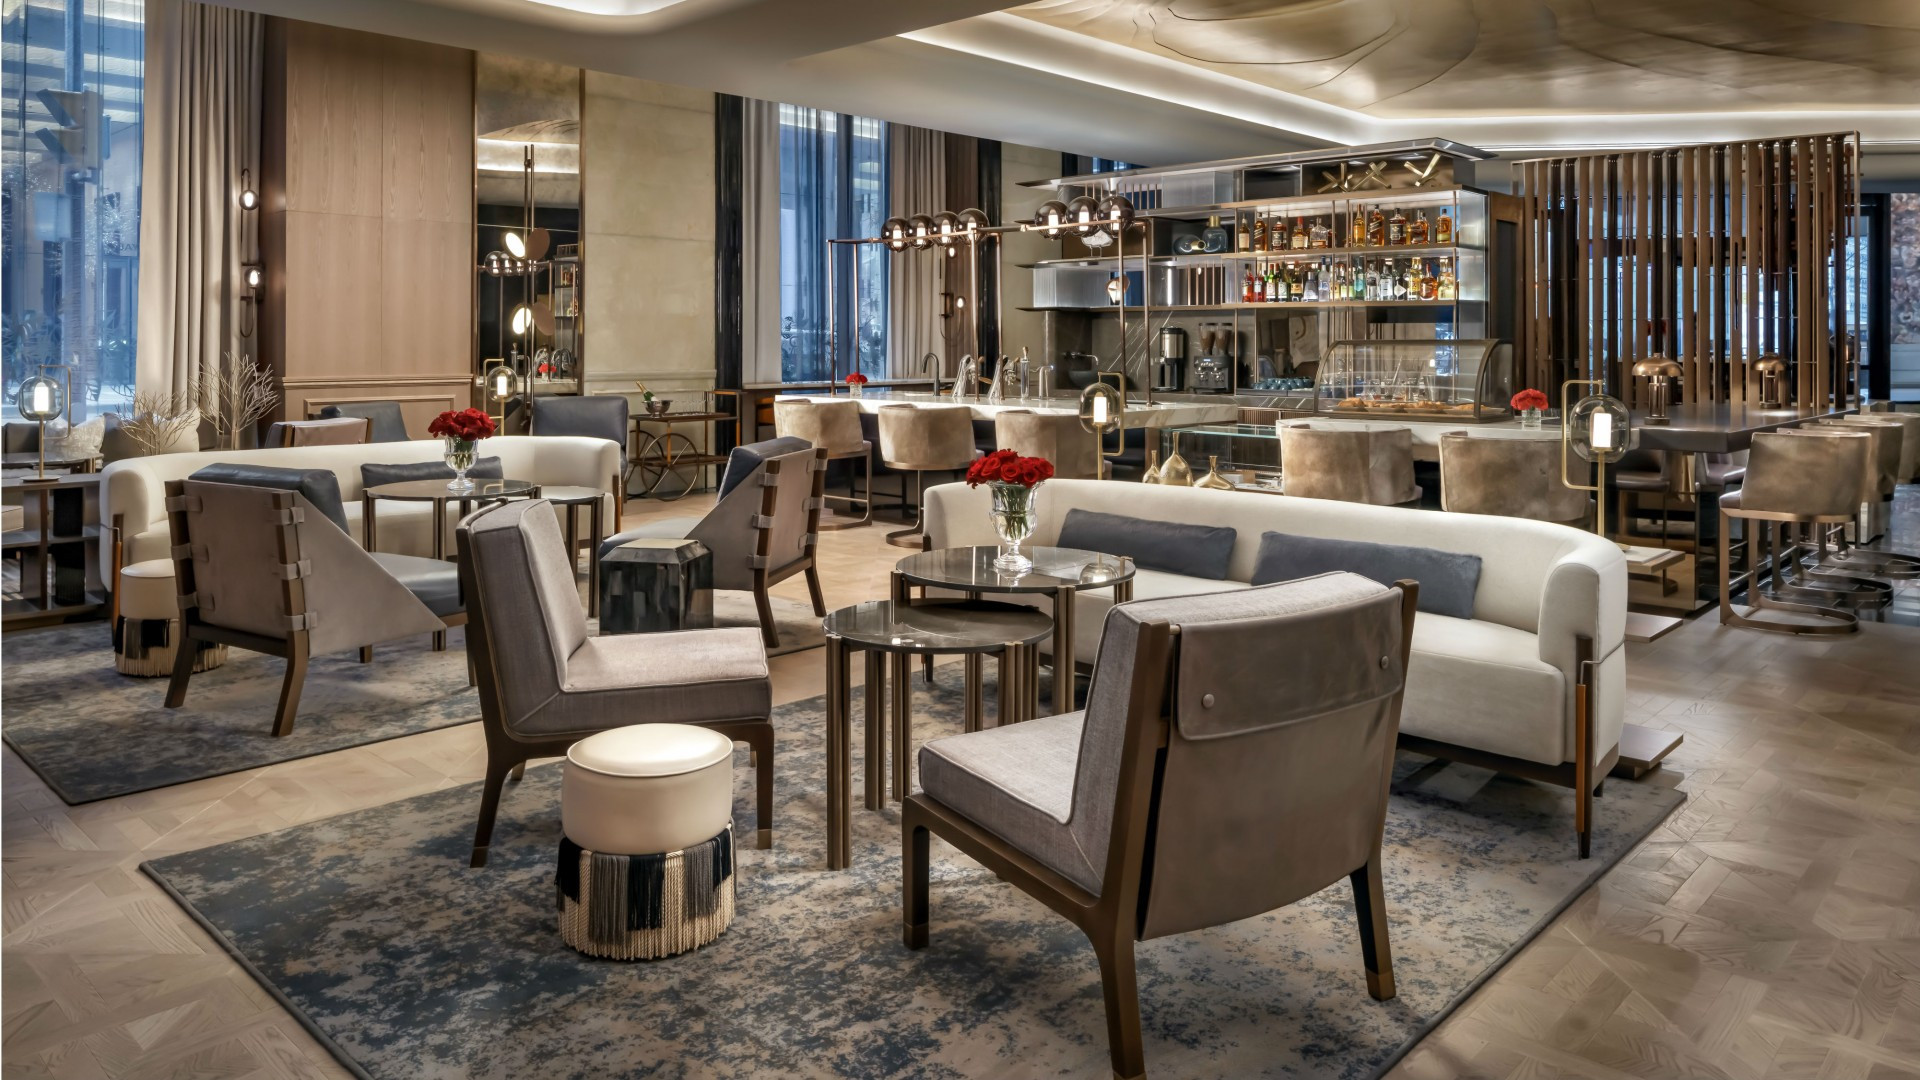 The best Toronto hotels for a staycation | Lobby bar at the St. Regis Toronto